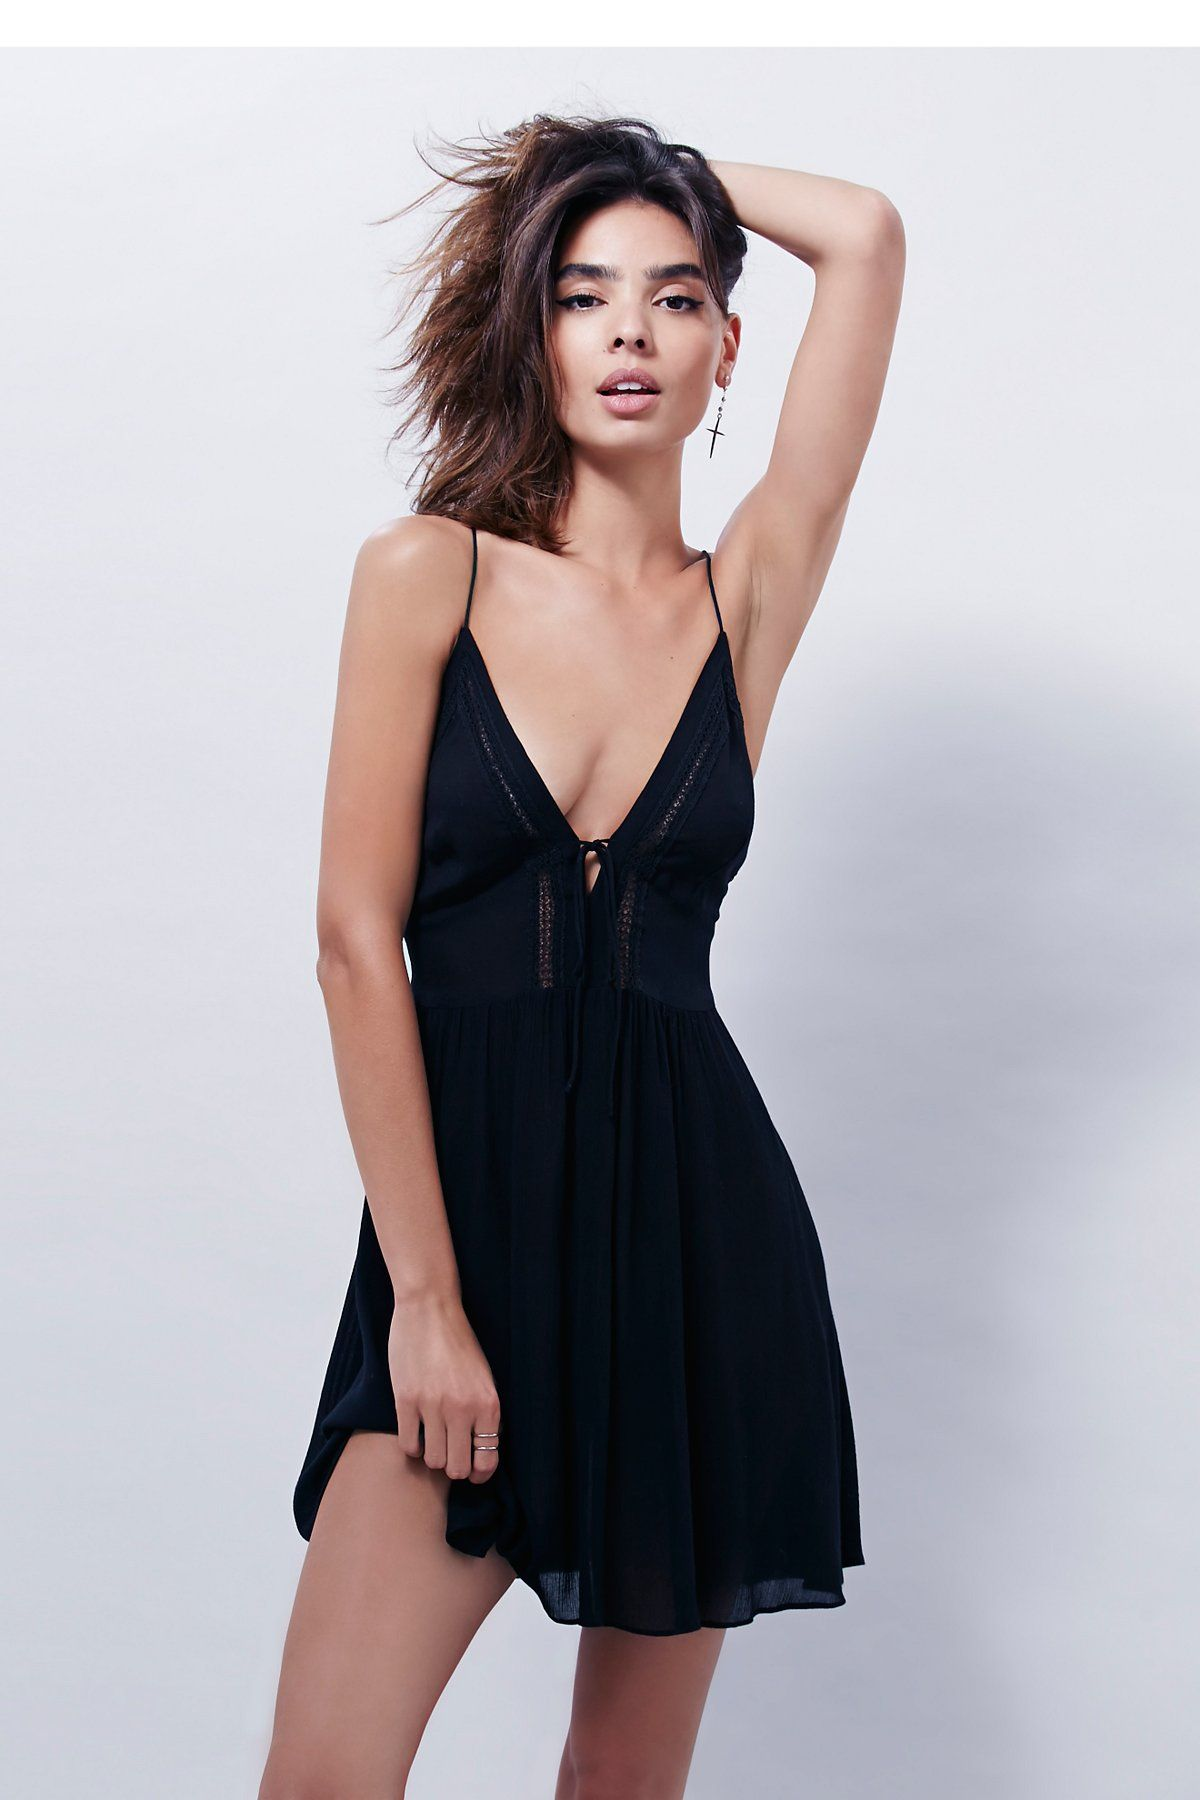 760a105a01 First Love Fit + Flare | Sheer fit and flare dress with crochet accent  along bust and back. Thin straps and tie detailing in front and back.  Unlined.